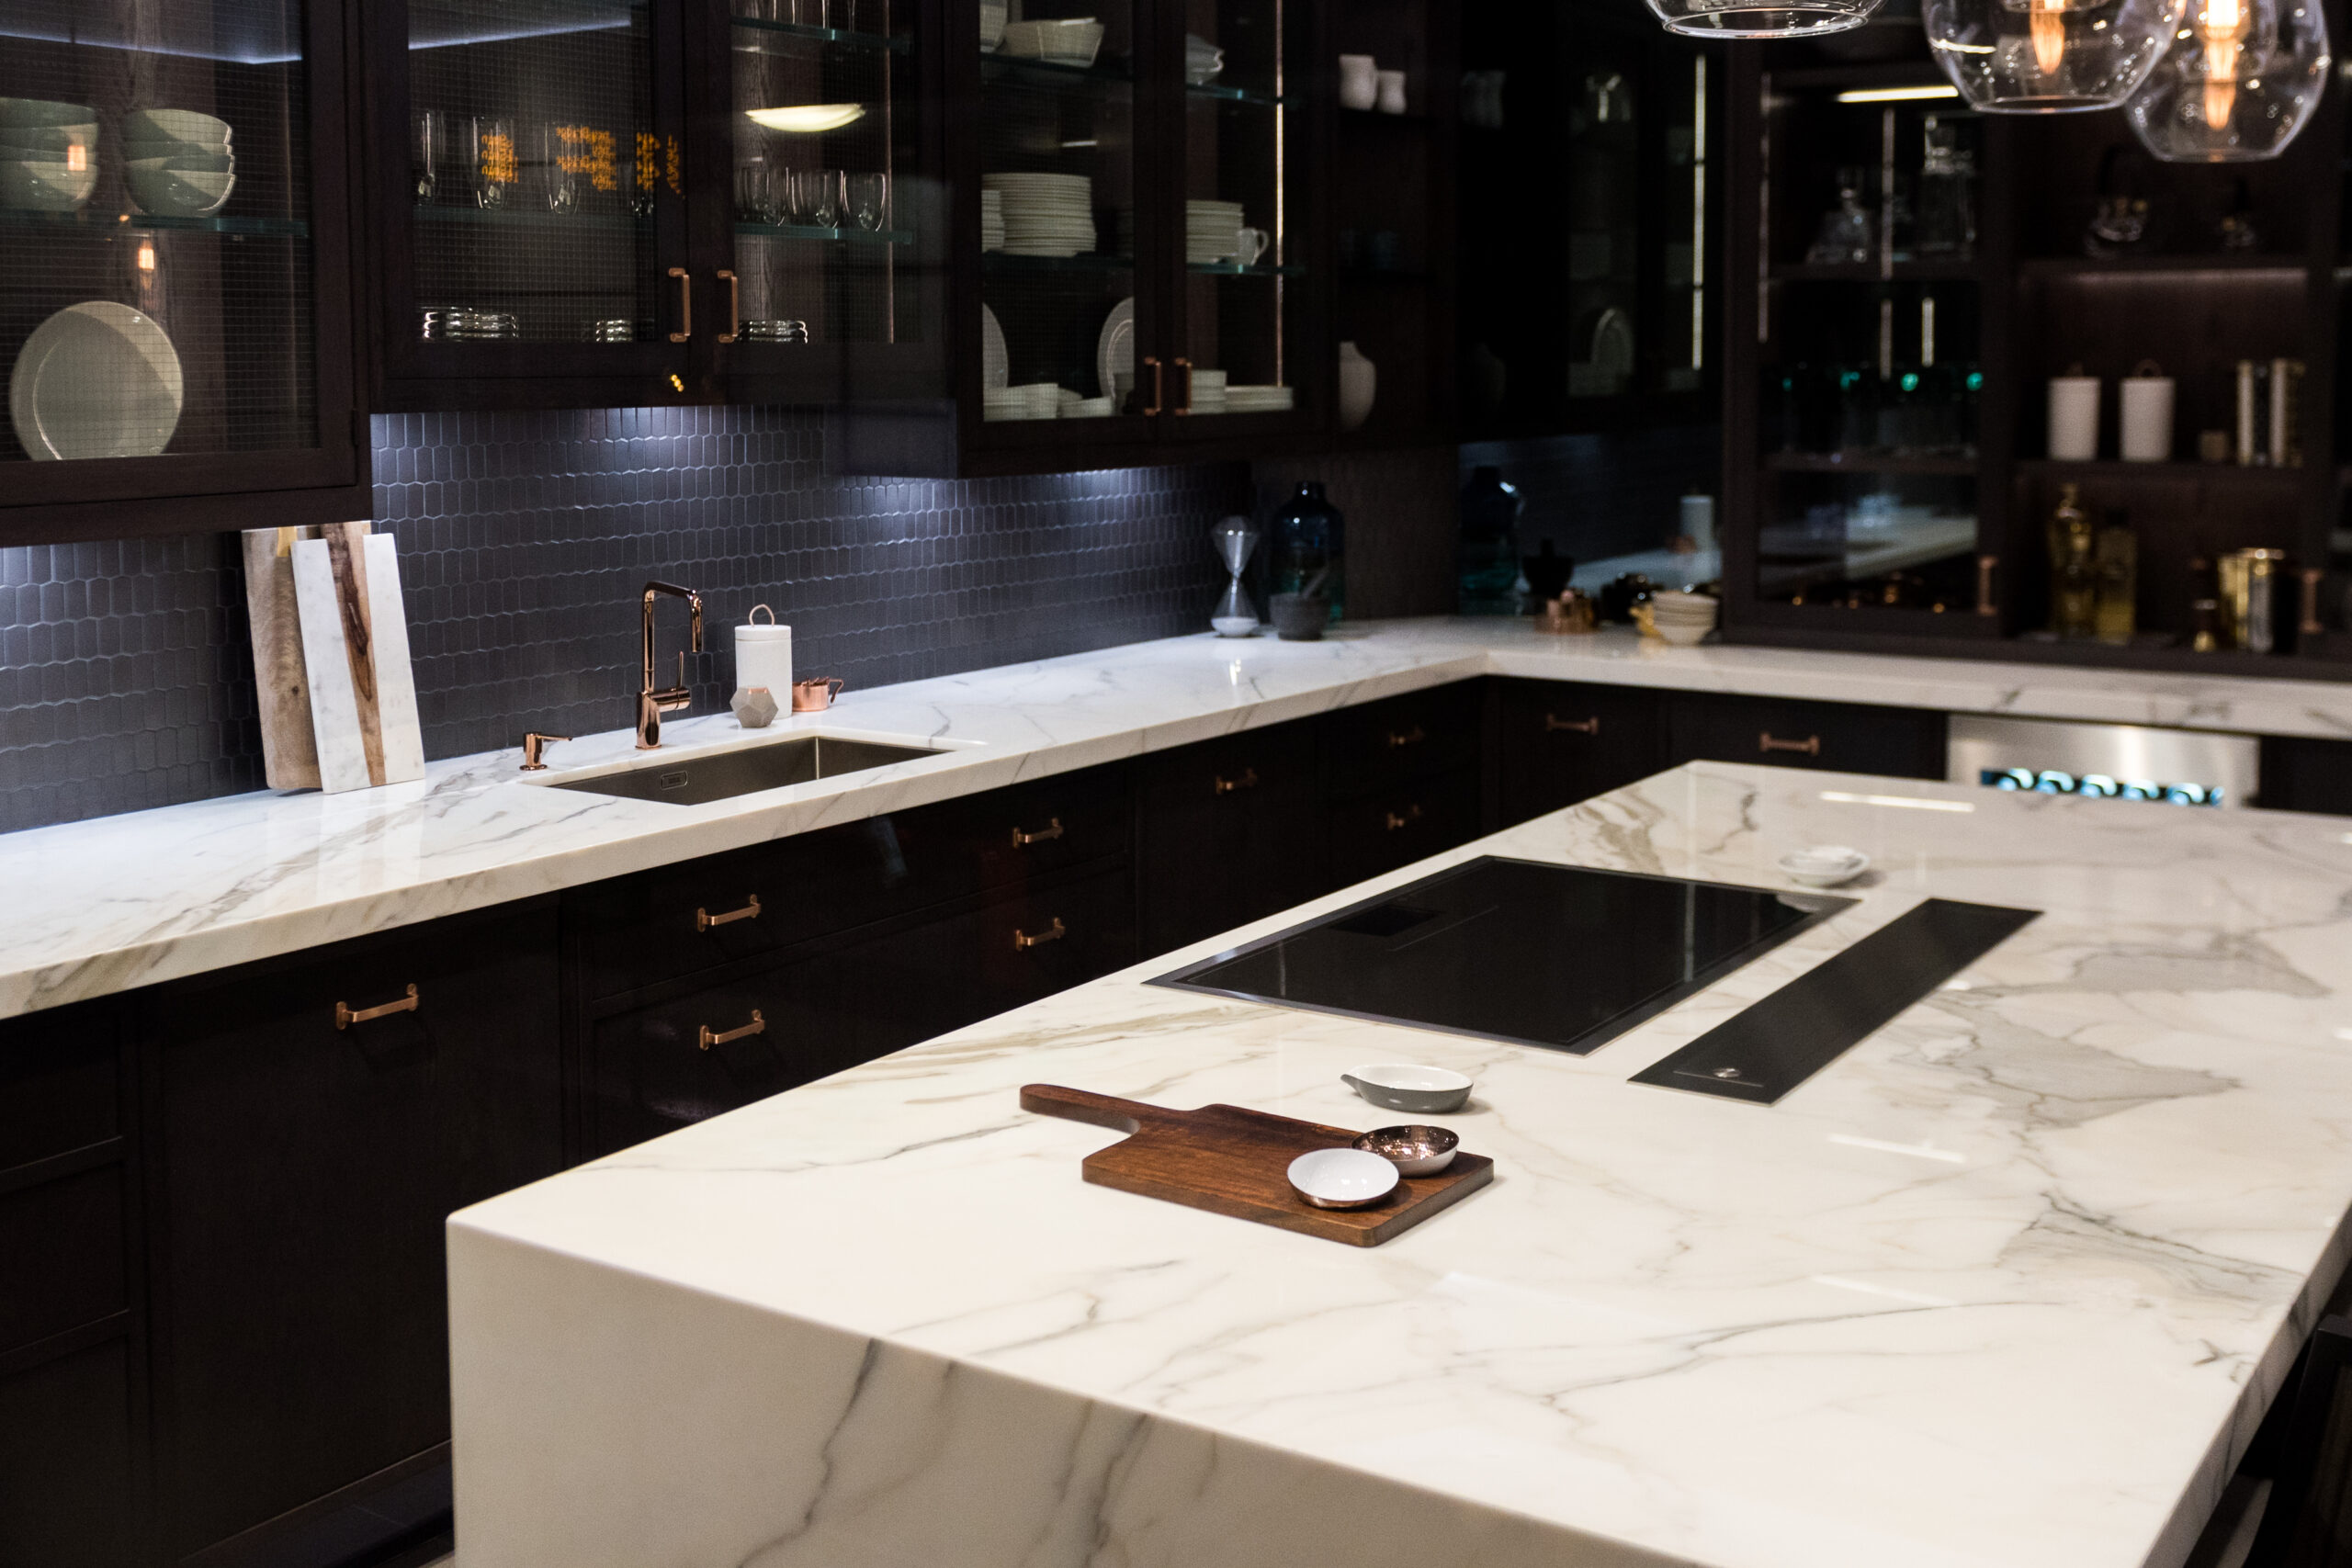 Bespoke High Quality Kitchen with Large Marble Counter Top.